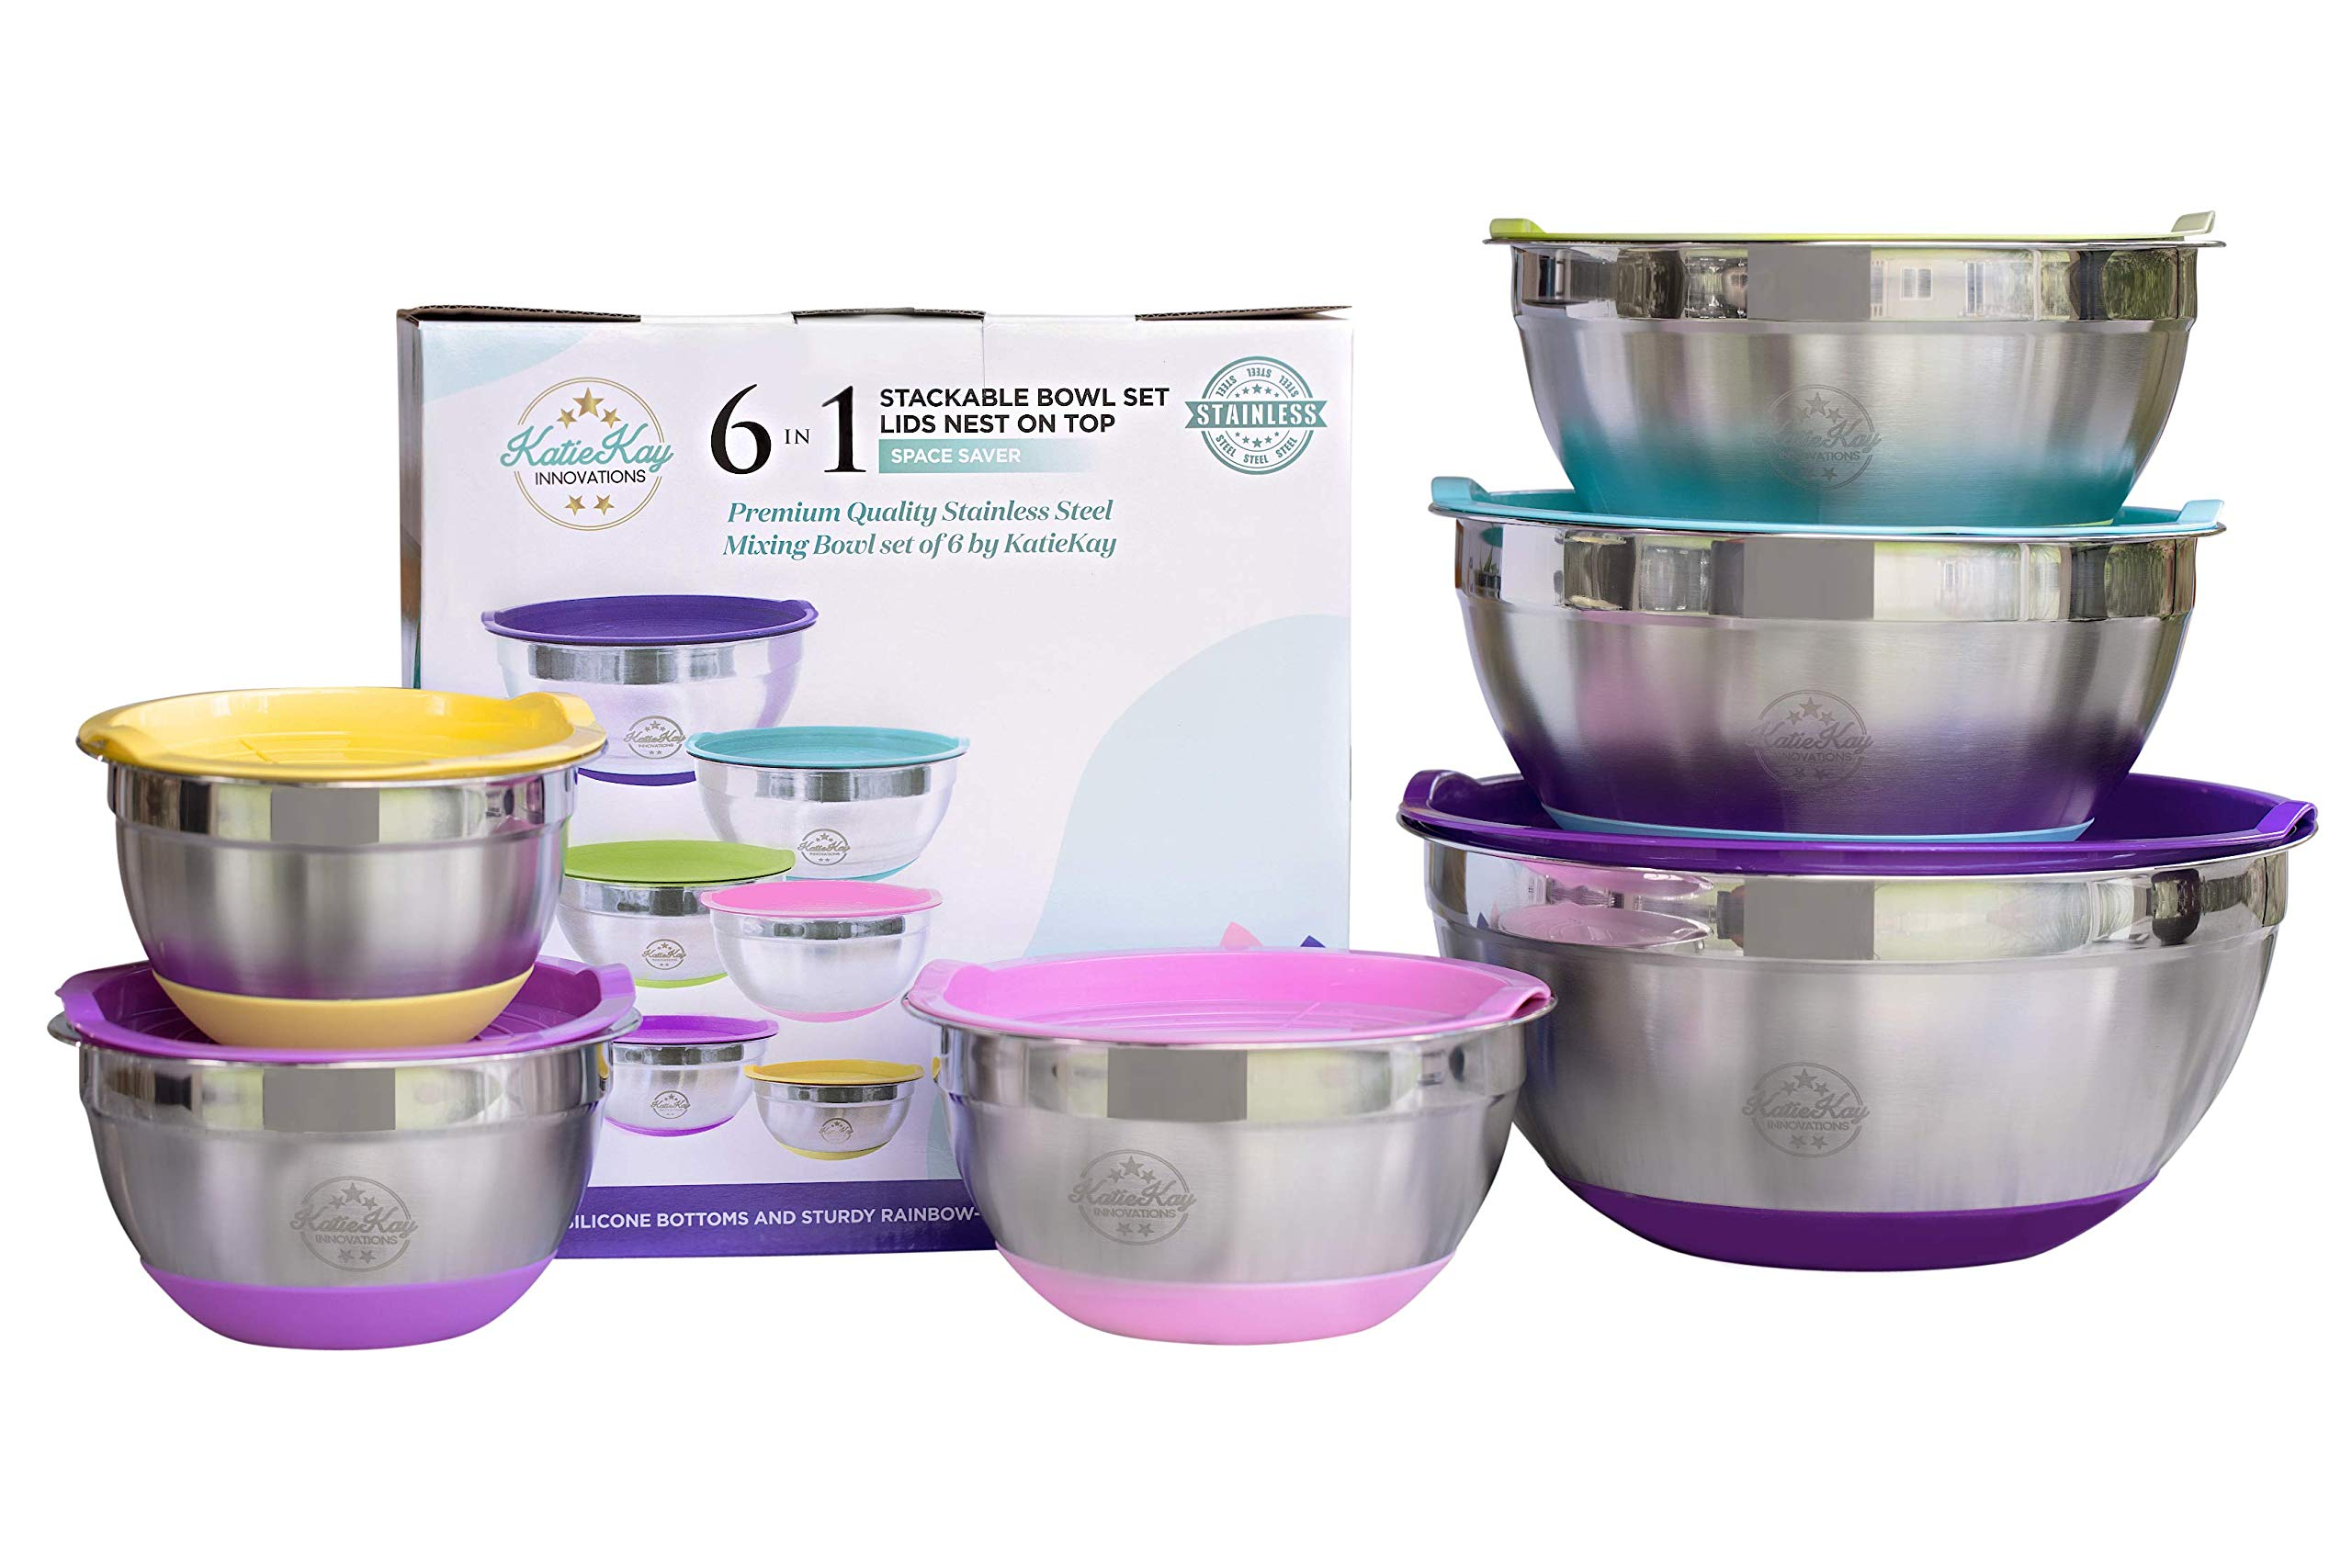 Premium Stainless Steel 6-Piece Mixing Bowl Set by KatieKay-Extra Thick .5mm Steel-1-1.5-2-3-4-6 Qt-Stackable Non-Slip Silicone Bottoms-Airtight Rainbow-Colored Lids-Give Gifts-Prep Recipe-Make Bread by KatieKay